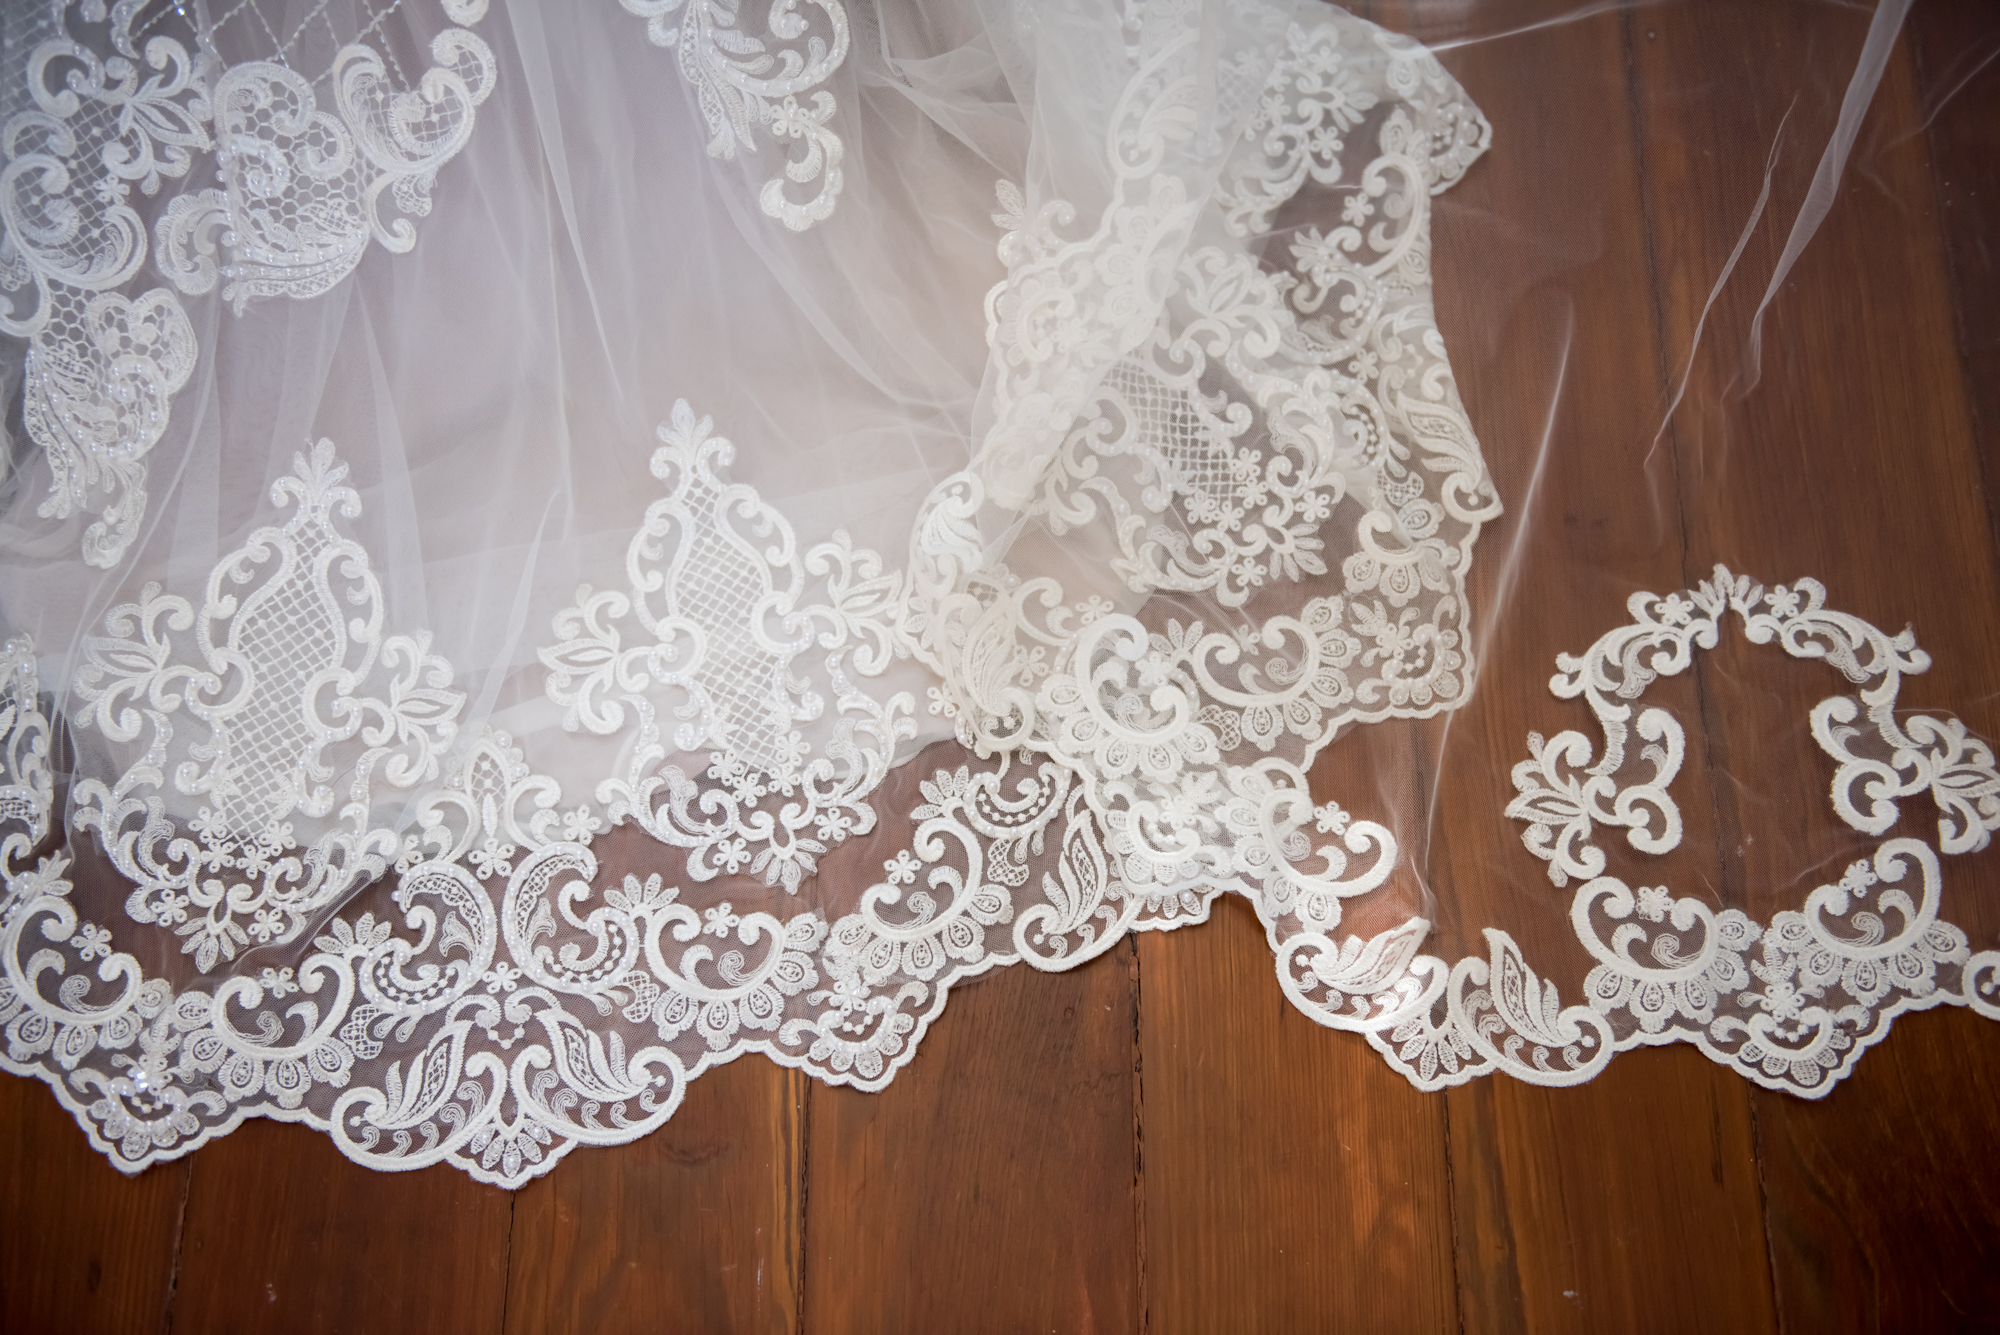 New Orleans Vintage wedding dress, scalloped lace edge